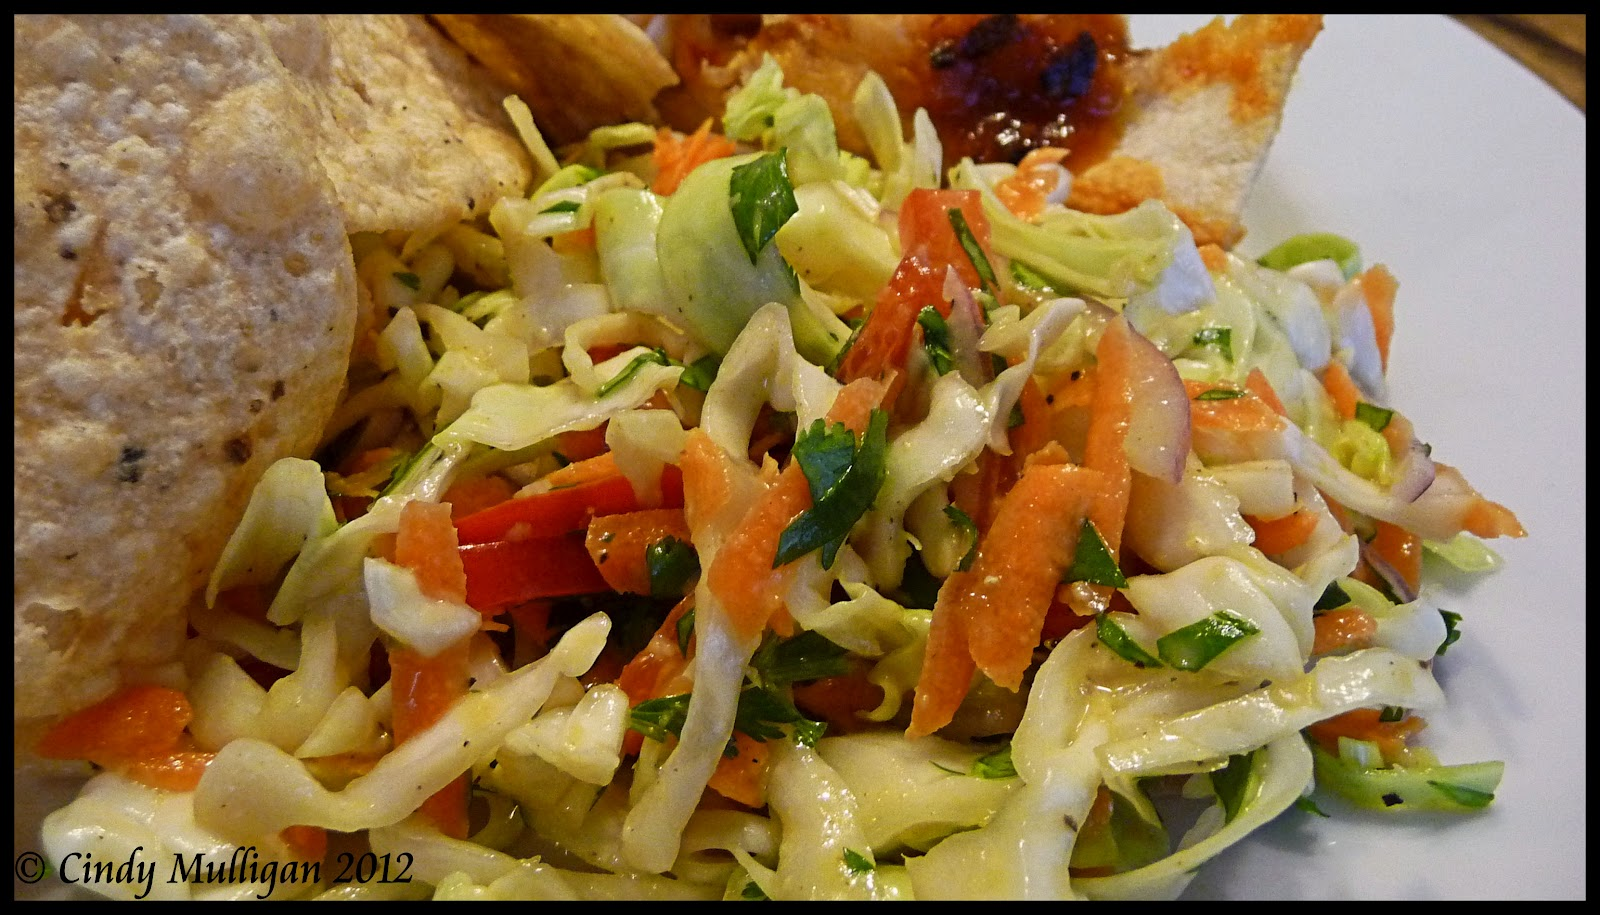 Spicy Coleslaw with Cumin Lime Dressing